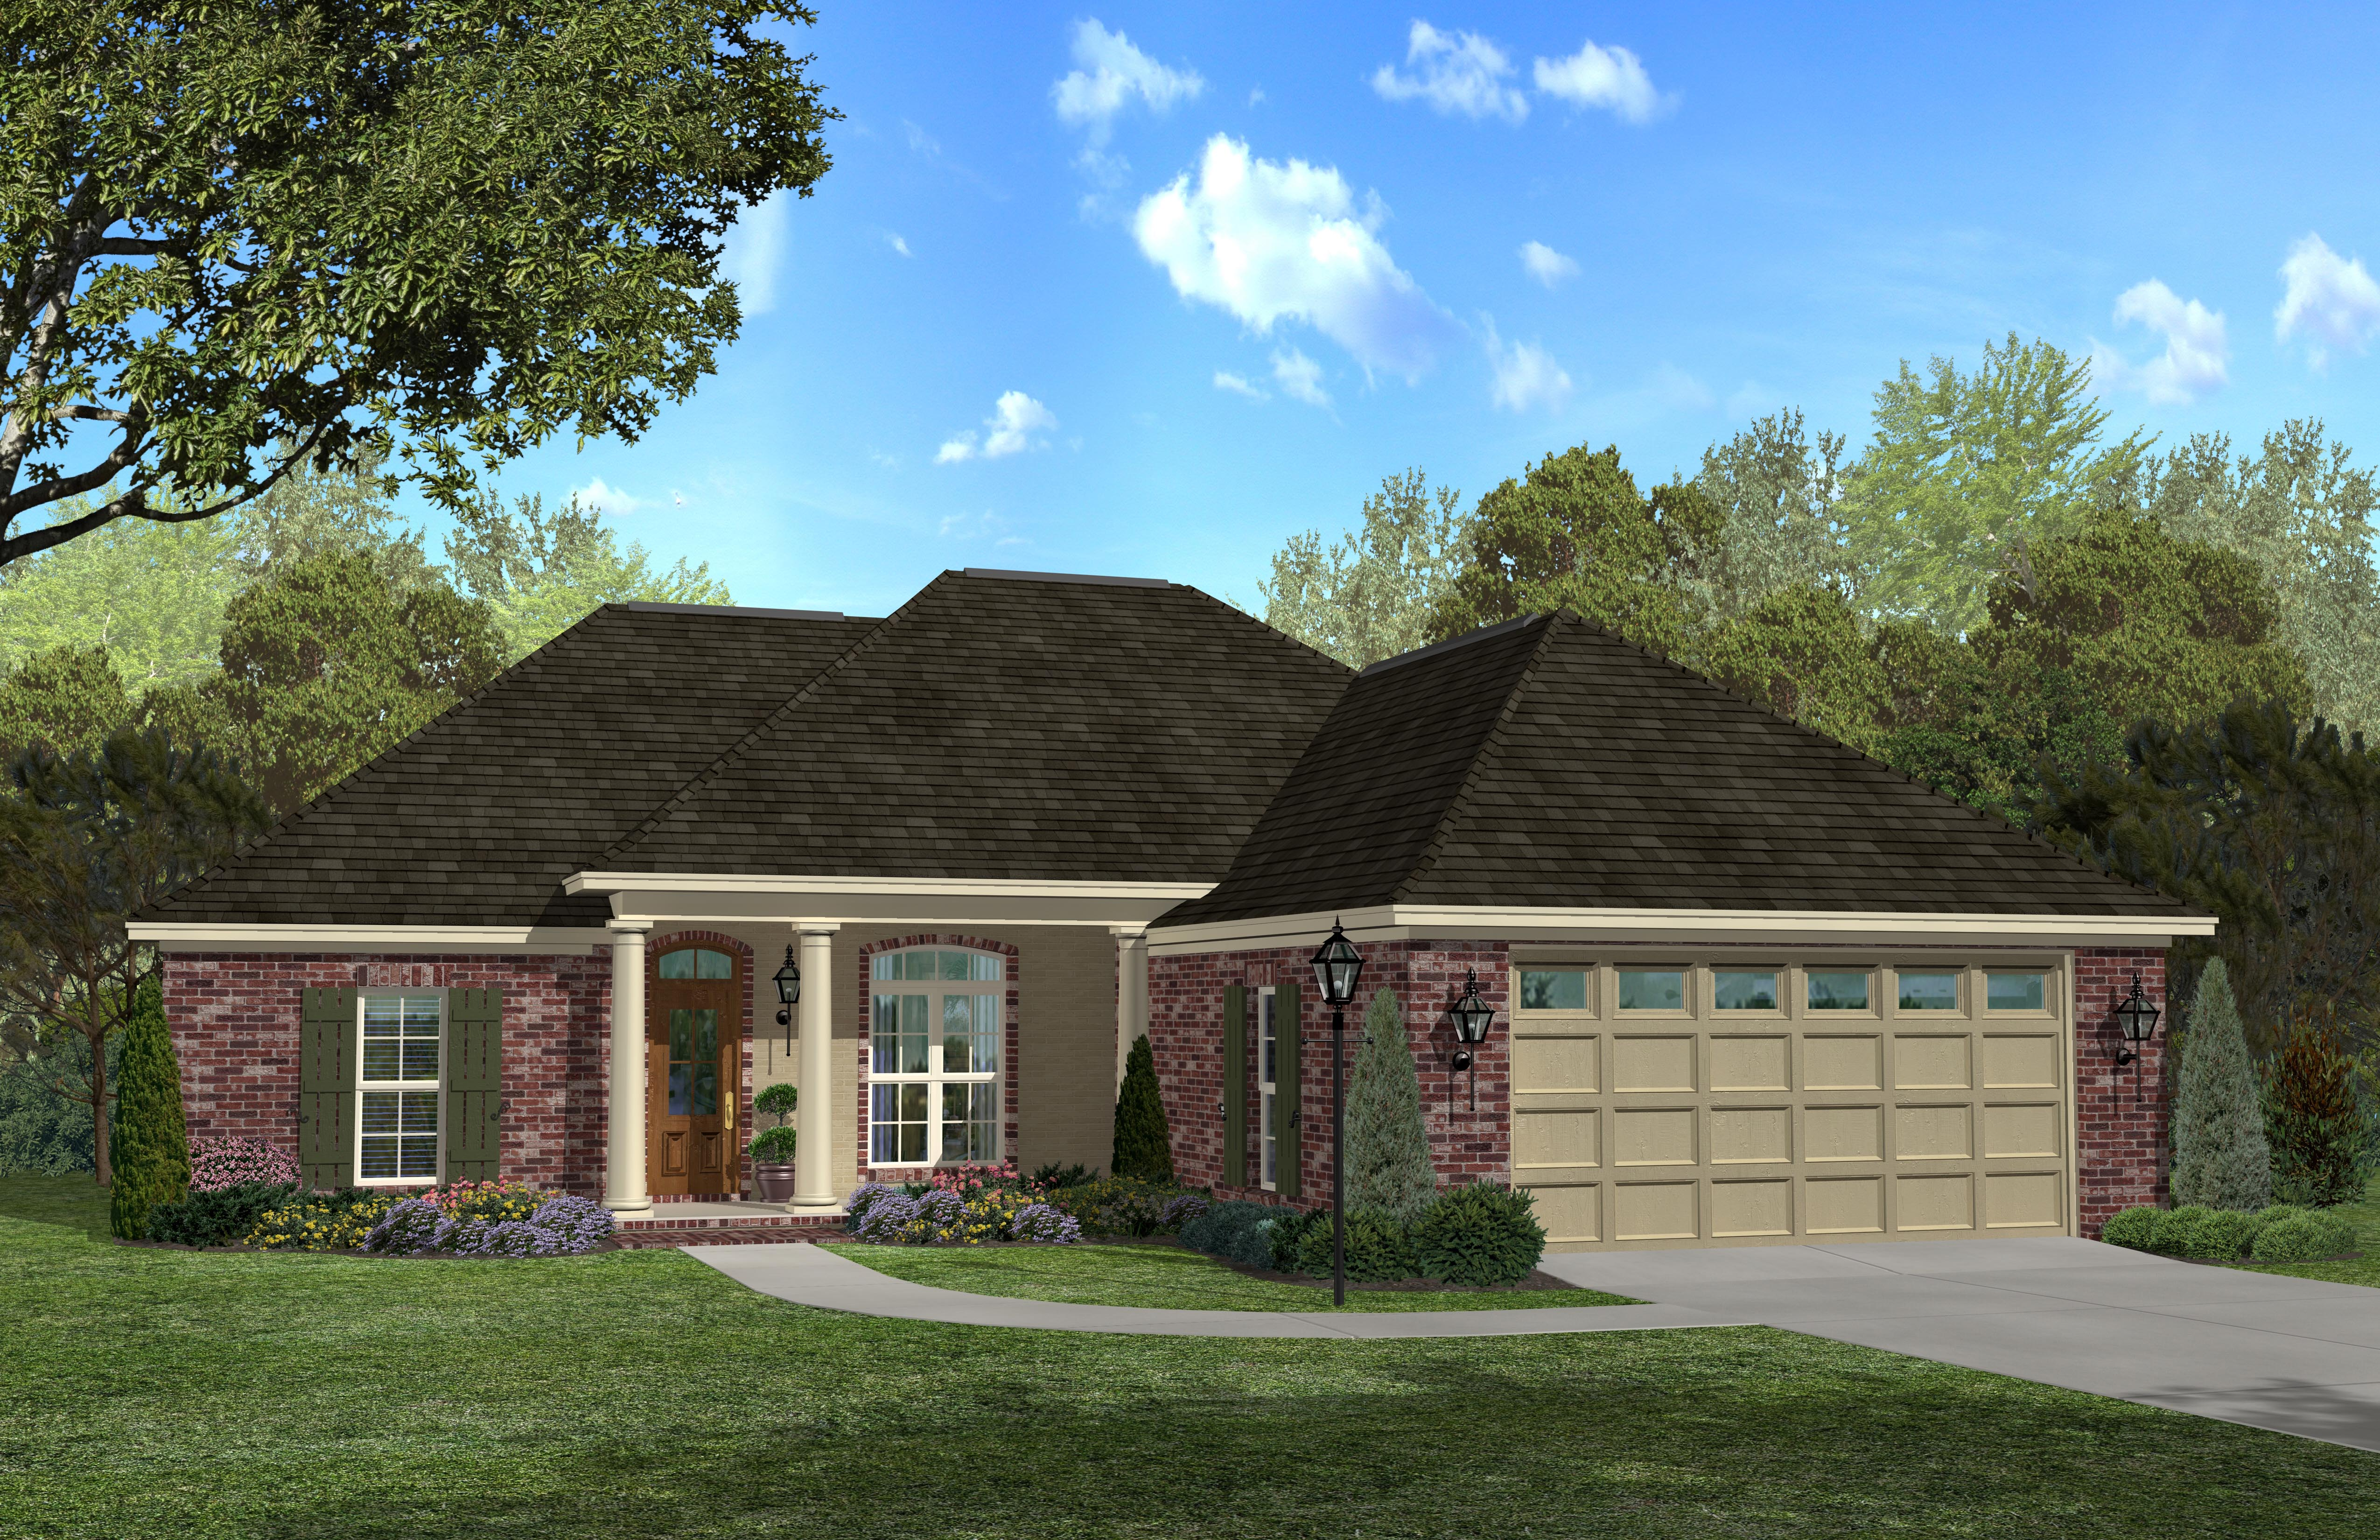 Country Home Plan 3 Bedrms 2 Baths 1700 Sq Ft 142 1033